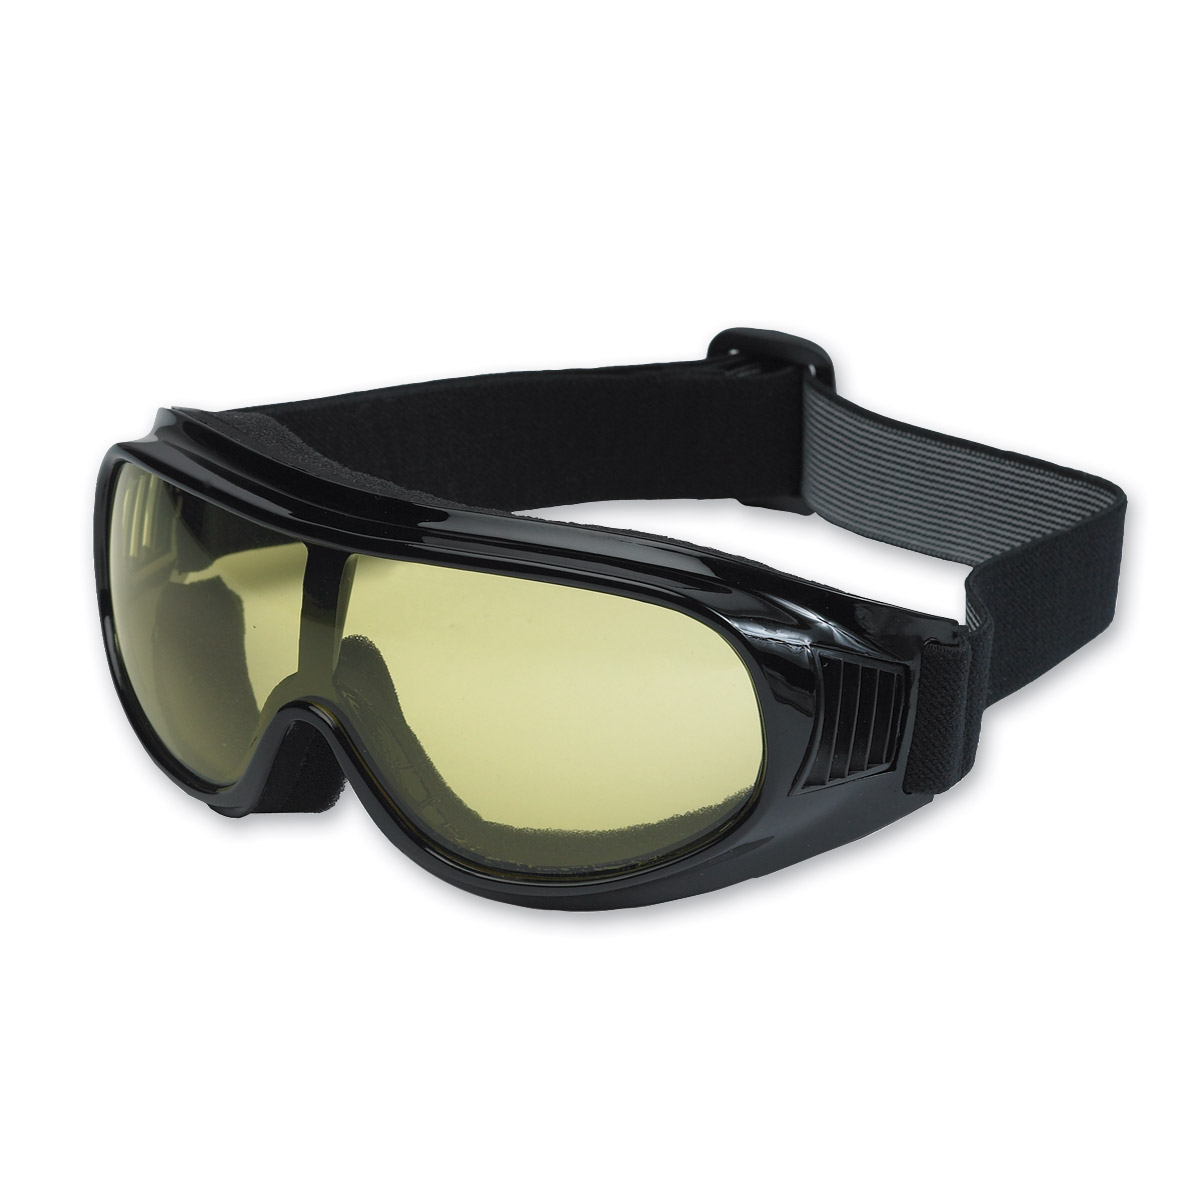 Chap'el Fitover Goggles with Night Driving Lens